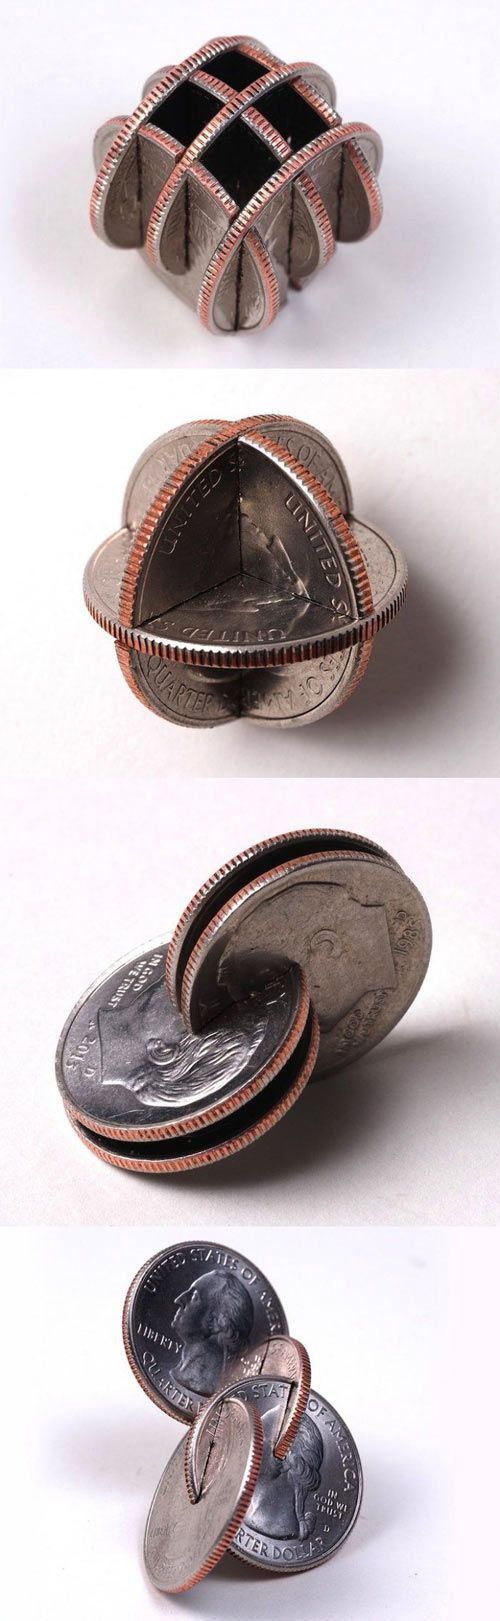 Art with coins… First thought thats pretty cool, next thought what a waste of good money... yes im that broke